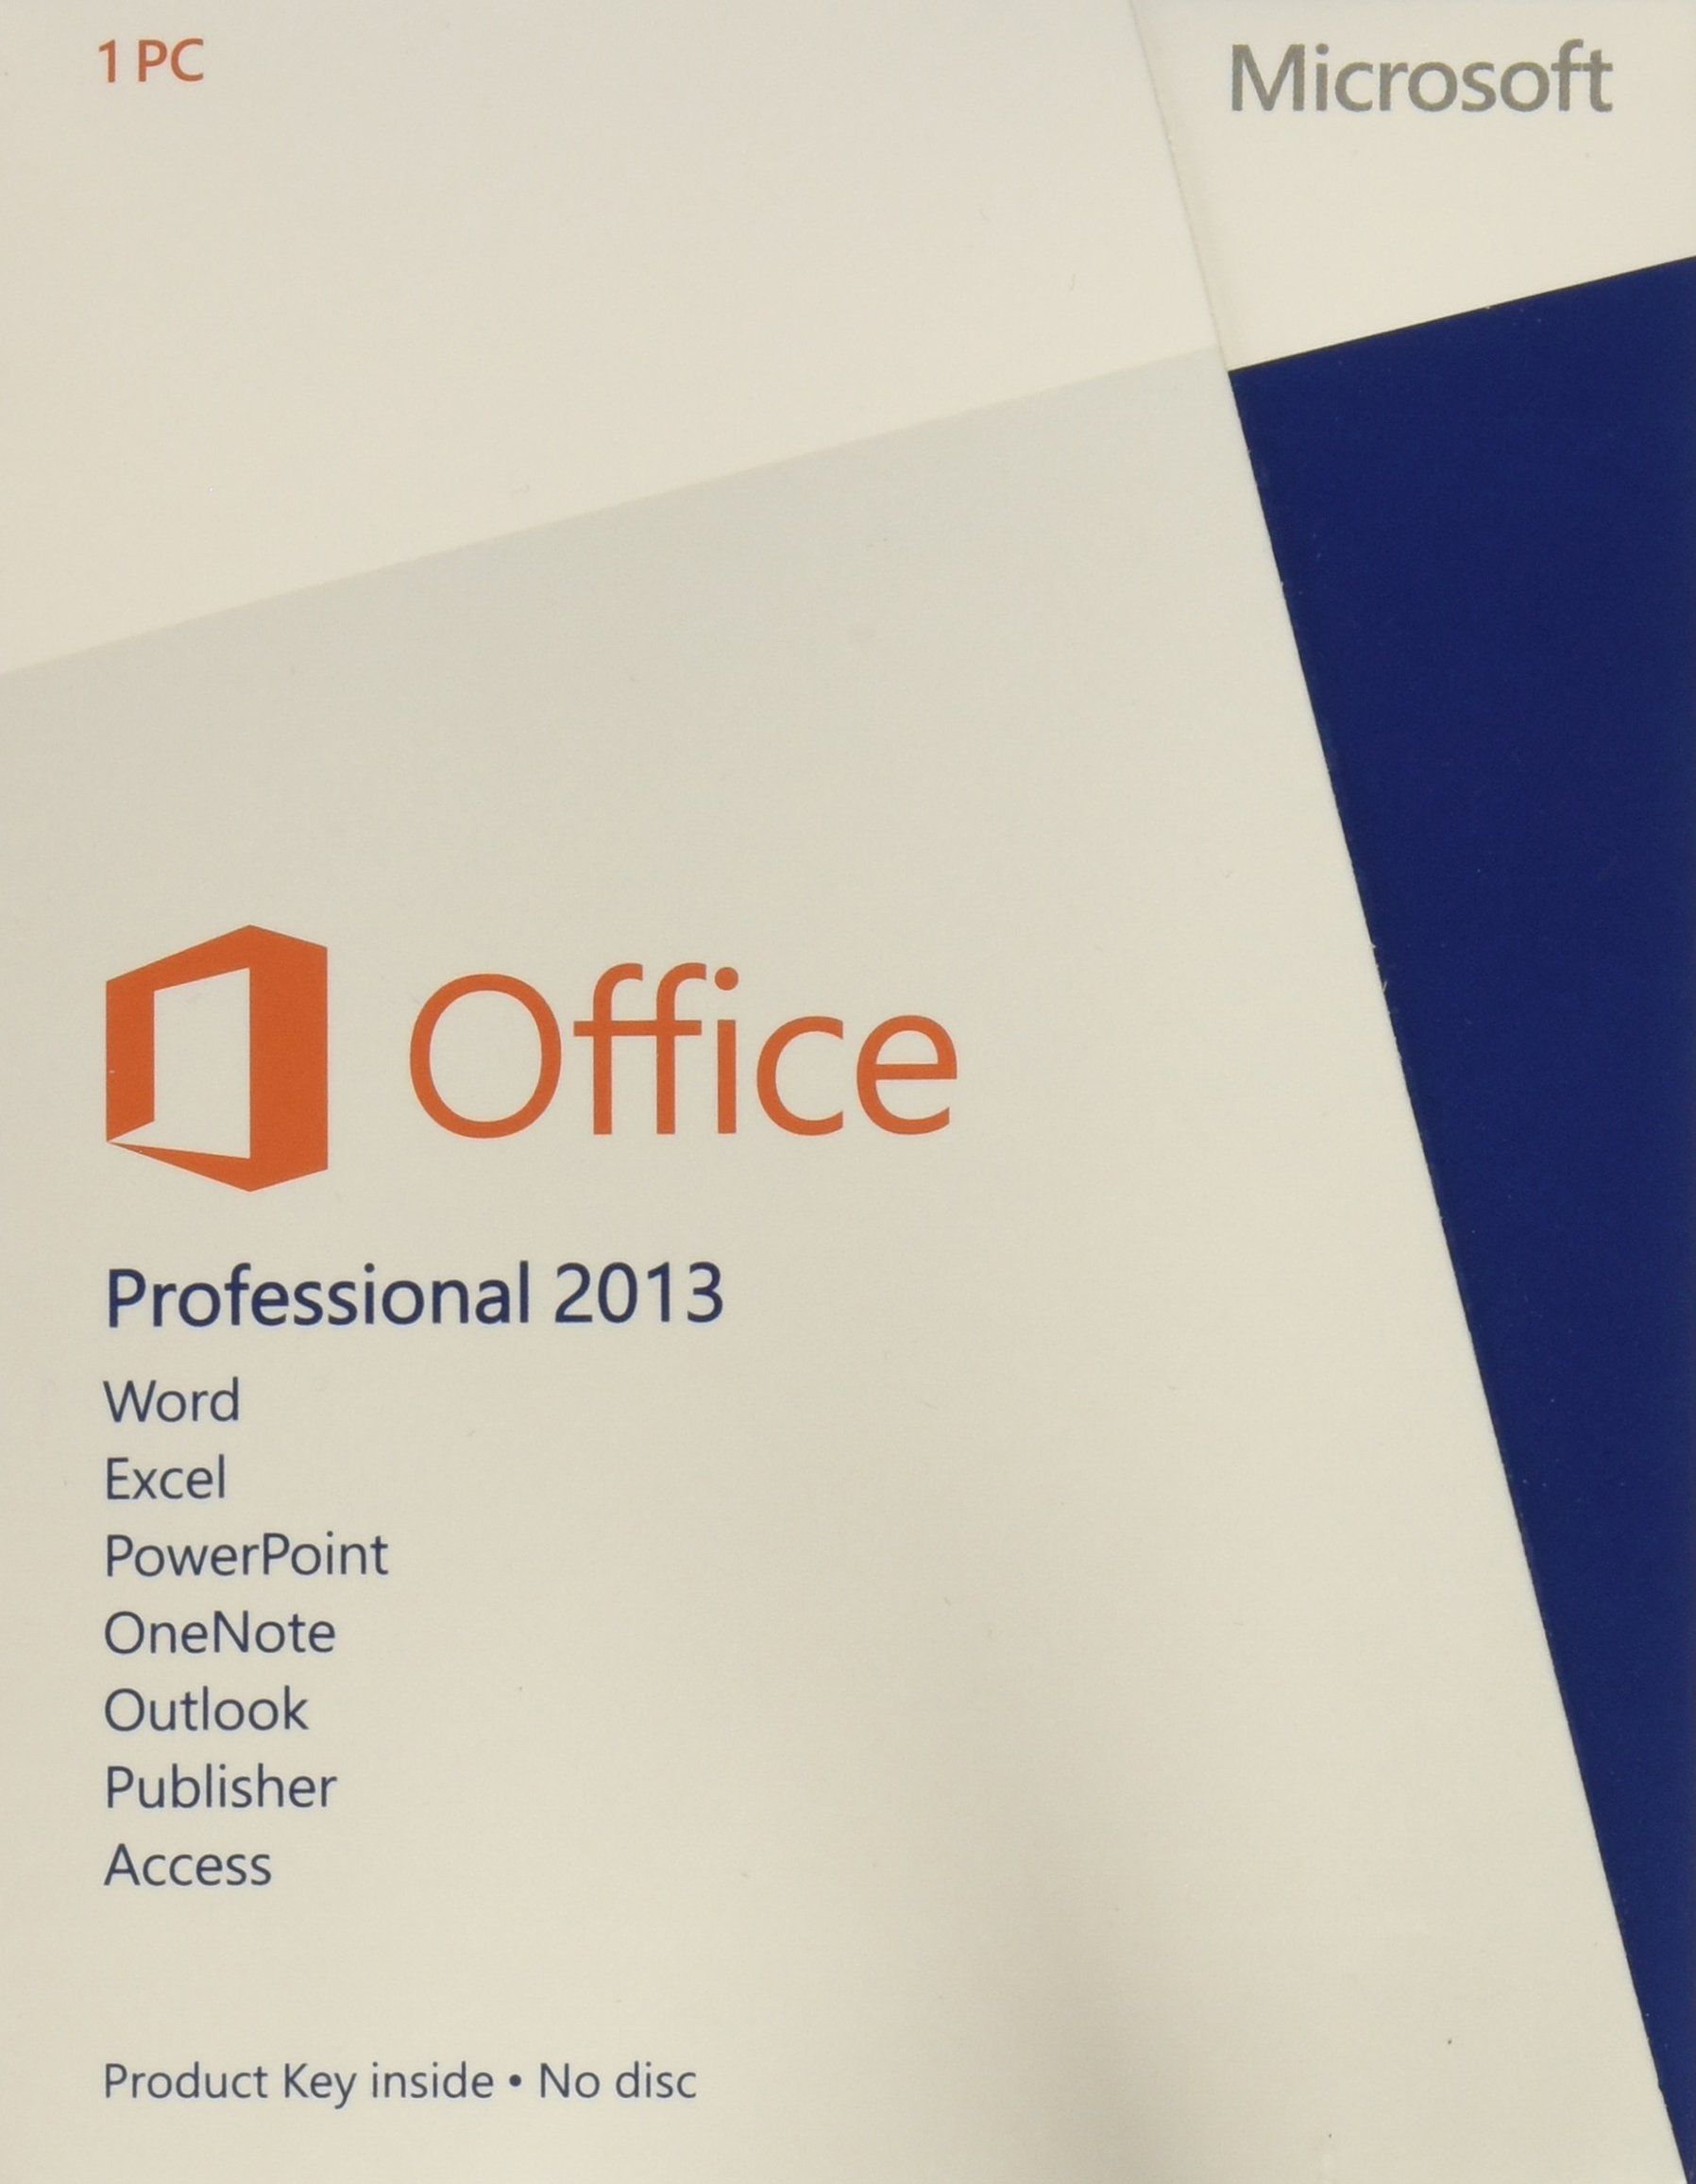 Office Picture Manager 2013 : office, picture, manager, Office, Professional, Product, Awesome, Products, Selected, Church…, Manager, Jobs,, Description,